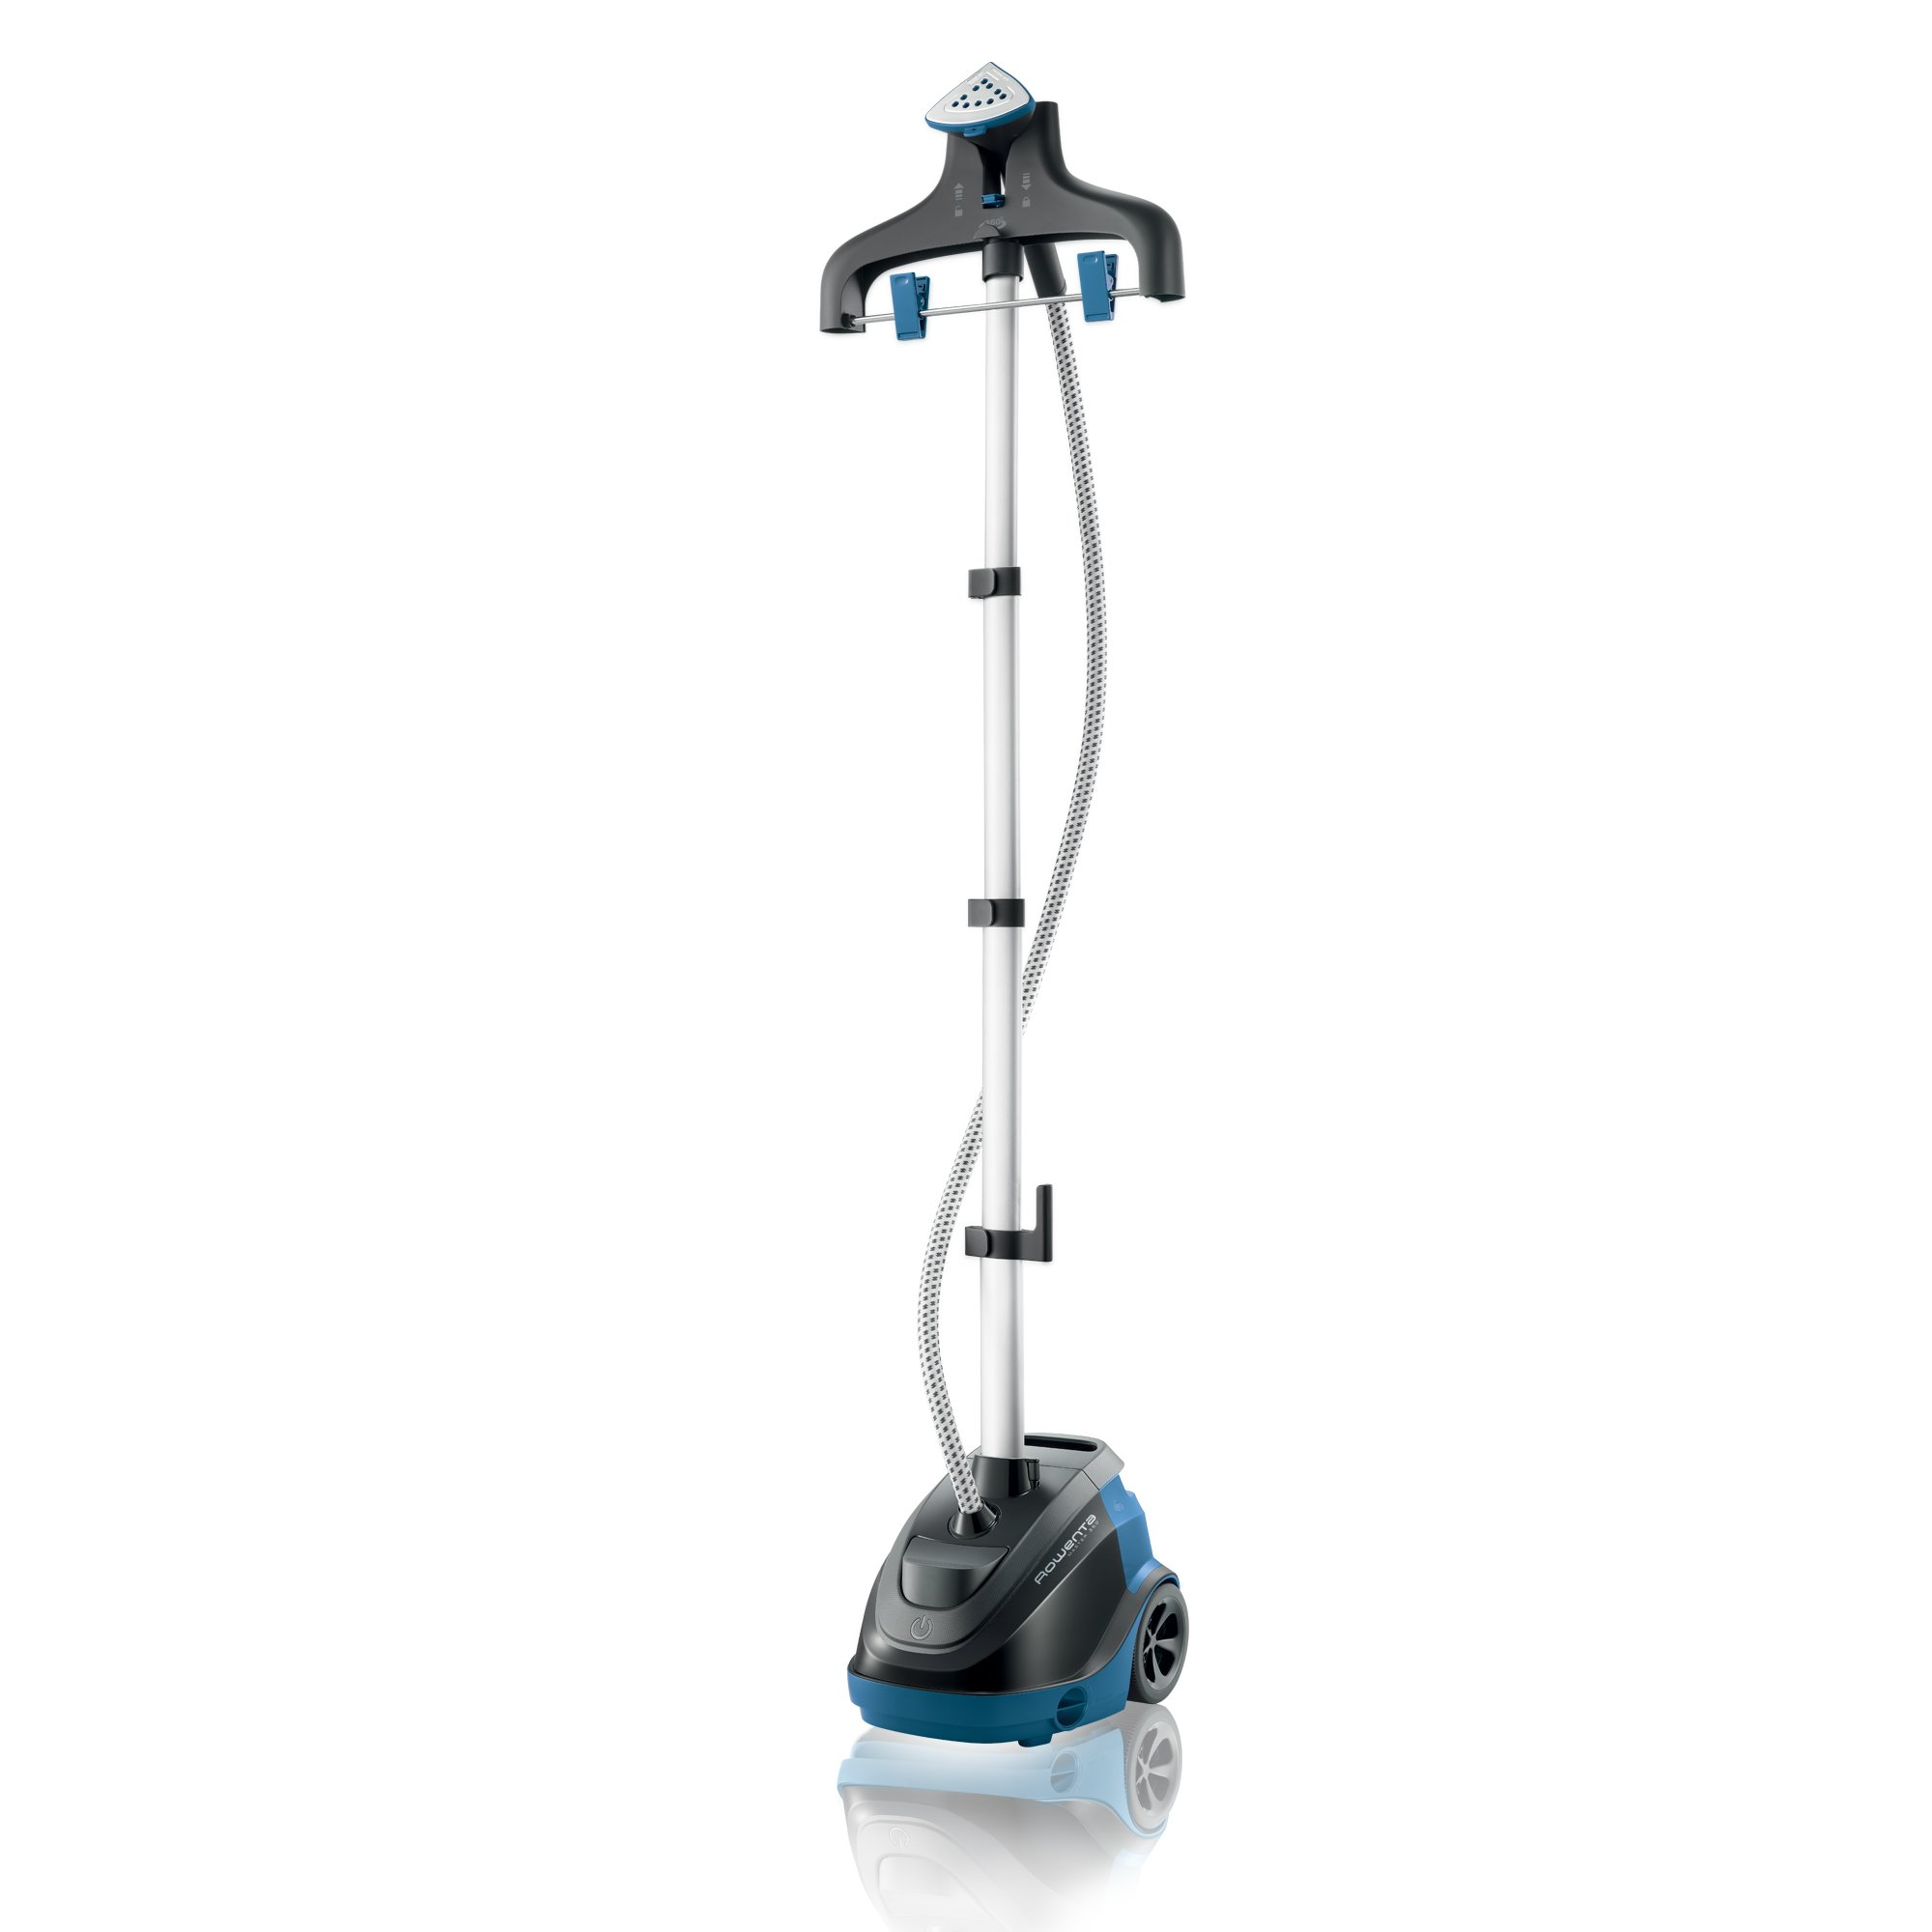 Rowenta IS6520 Master 360 Full Size Garment and Fabric Steamer with Rotating hanger, 1500-Watt, Blue by Rowenta